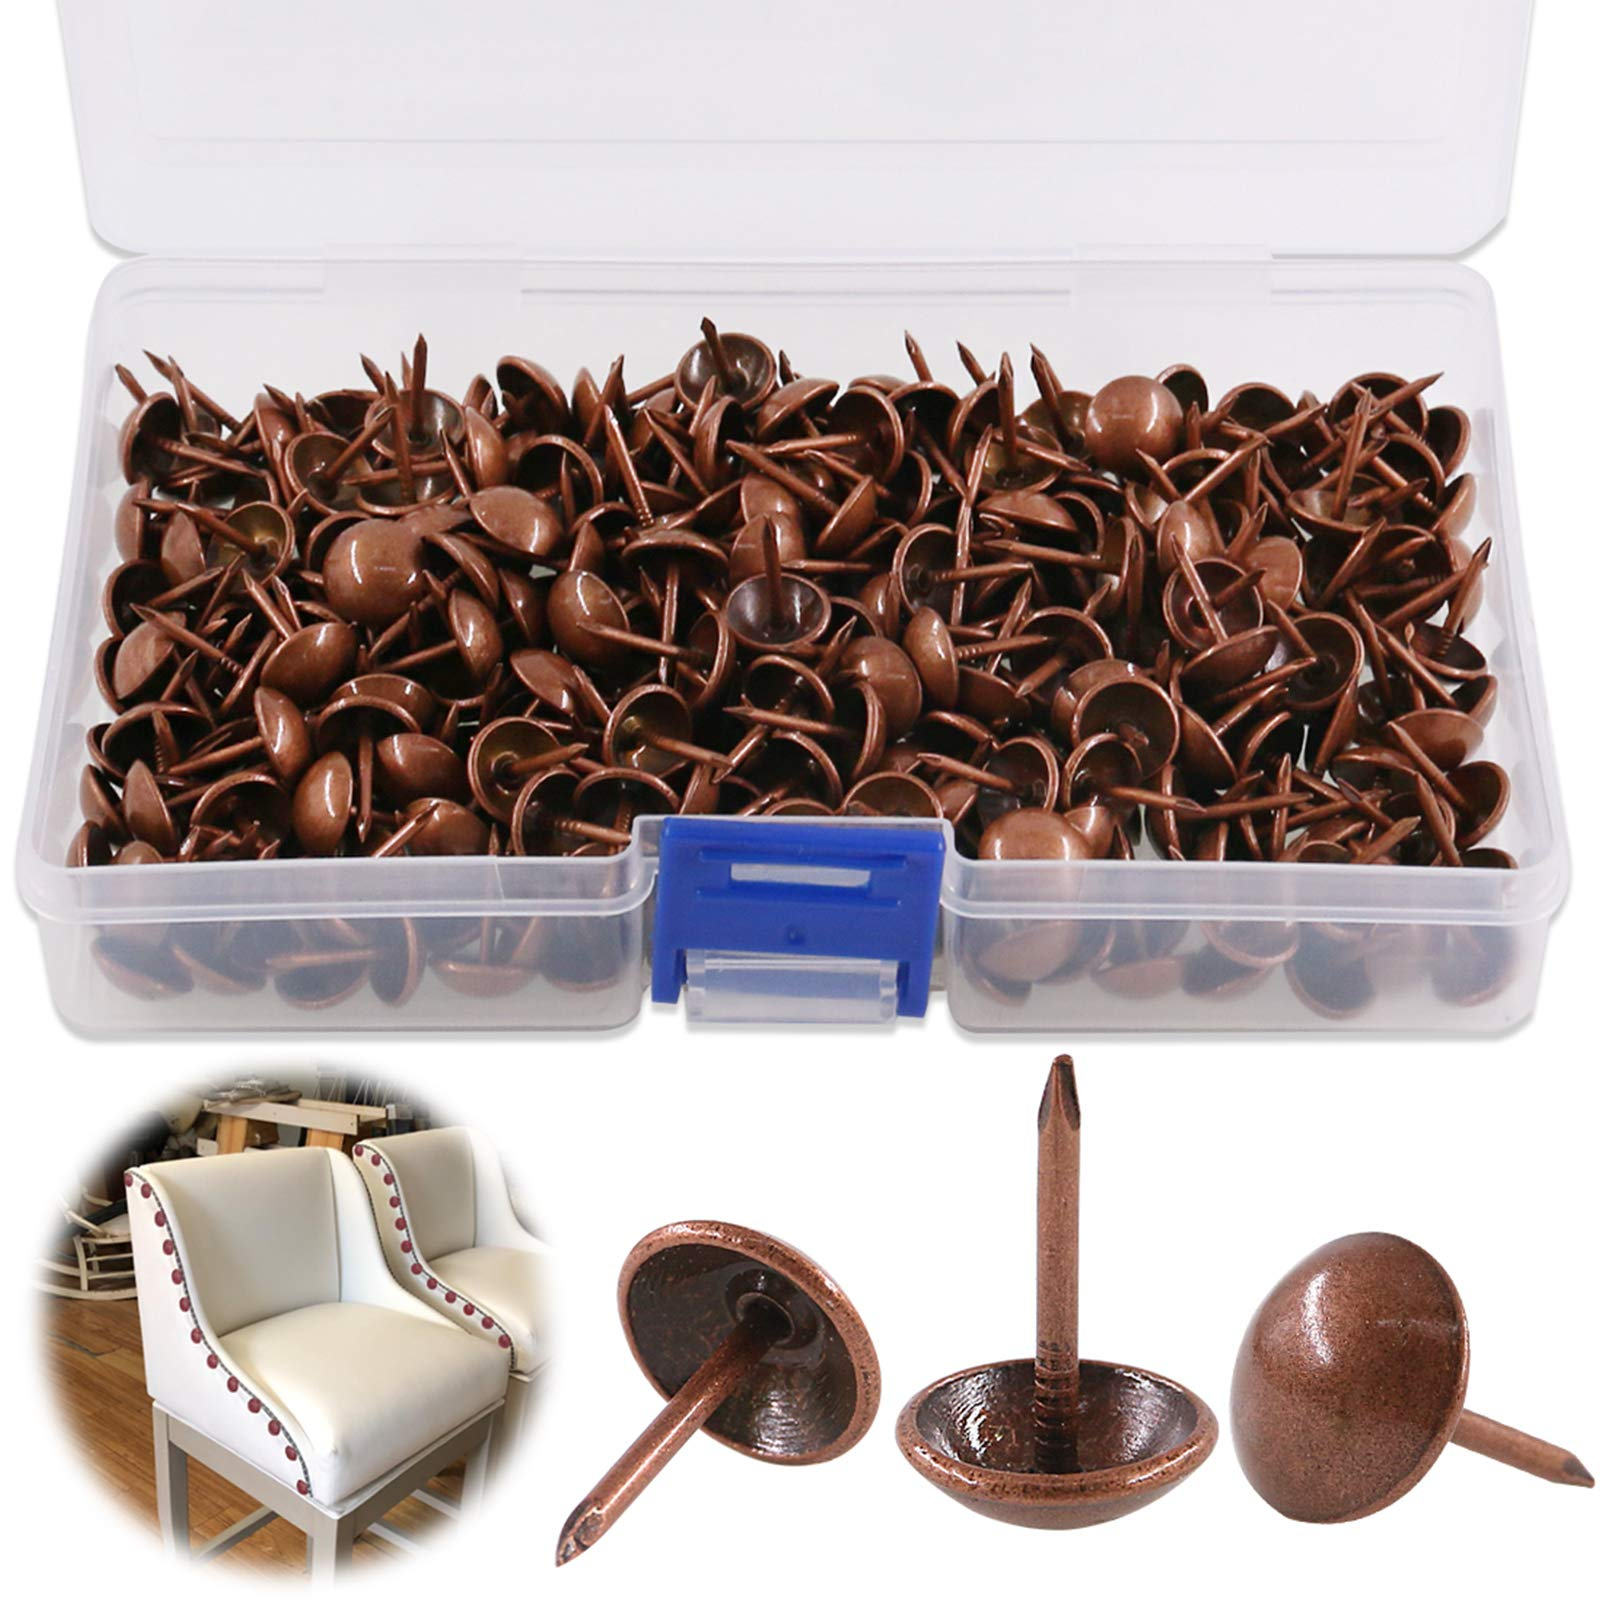 """Keadic 300Pcs 7/16"""" (11mm) Antique Upholstery Tacks Furniture Nails Pins Kit for Upholstered Furniture Cork Board or DIY Projects - Red Copper"""